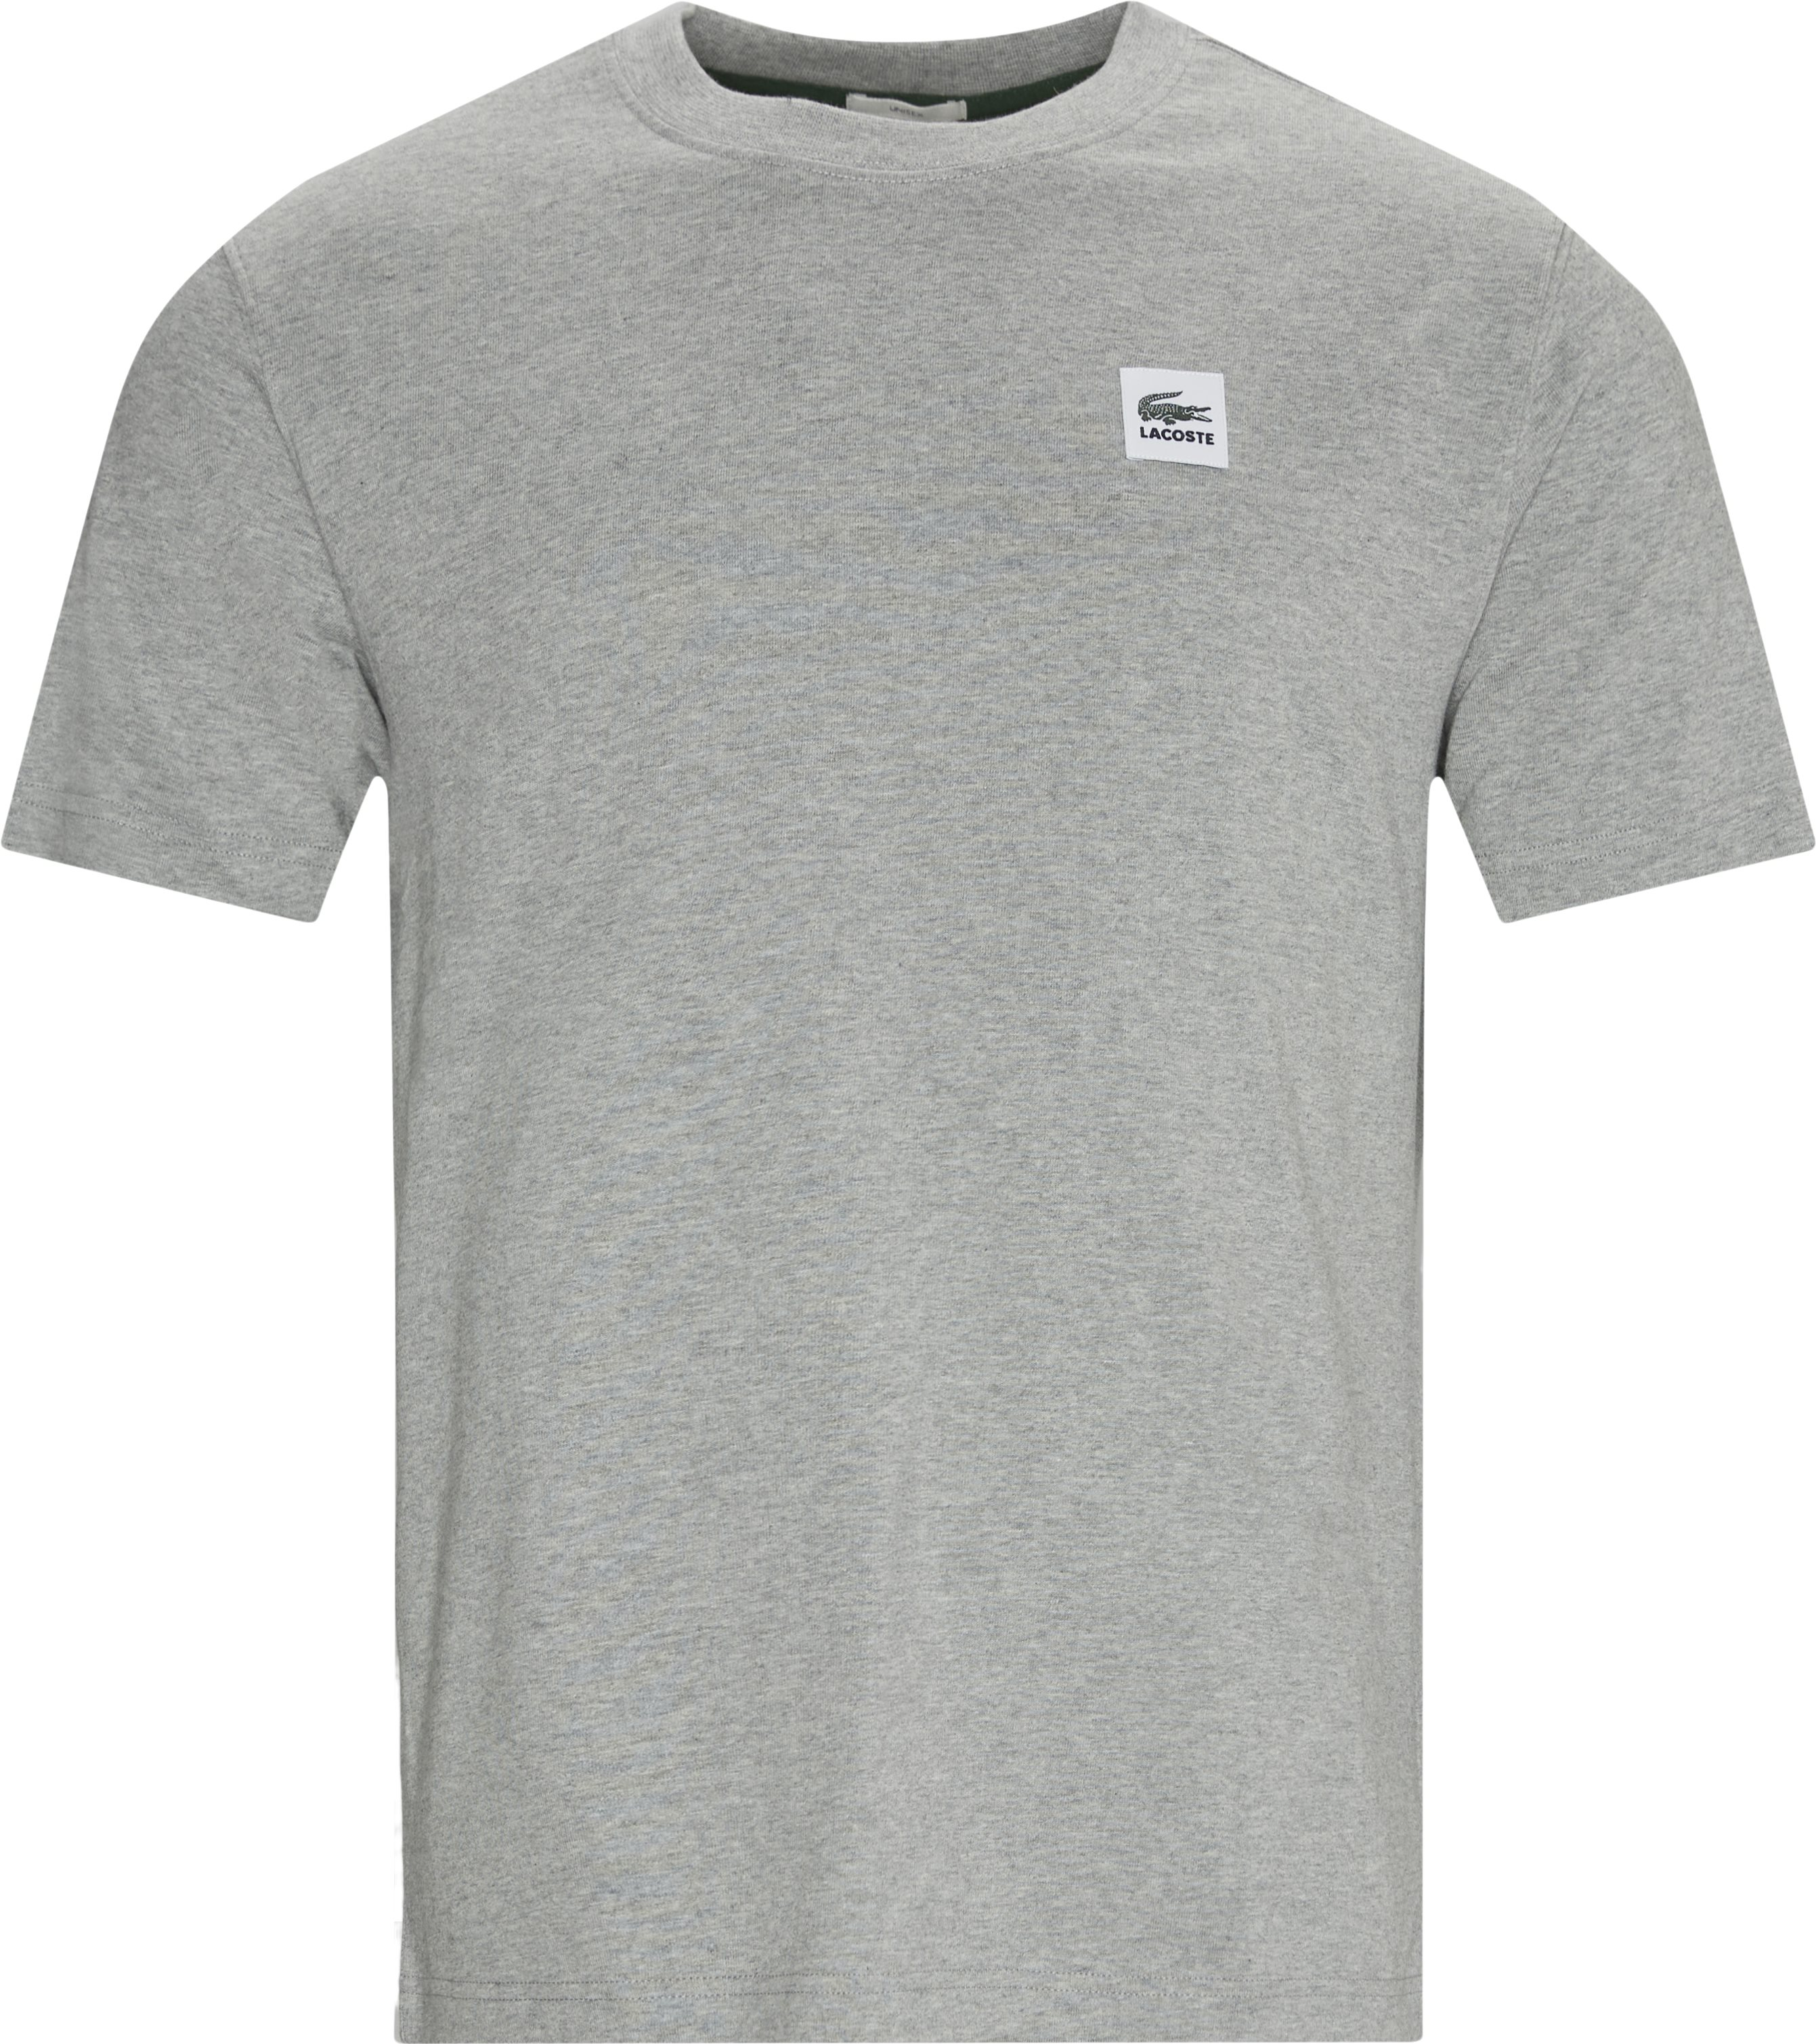 Logo Tee - T-shirts - Regular - Grey